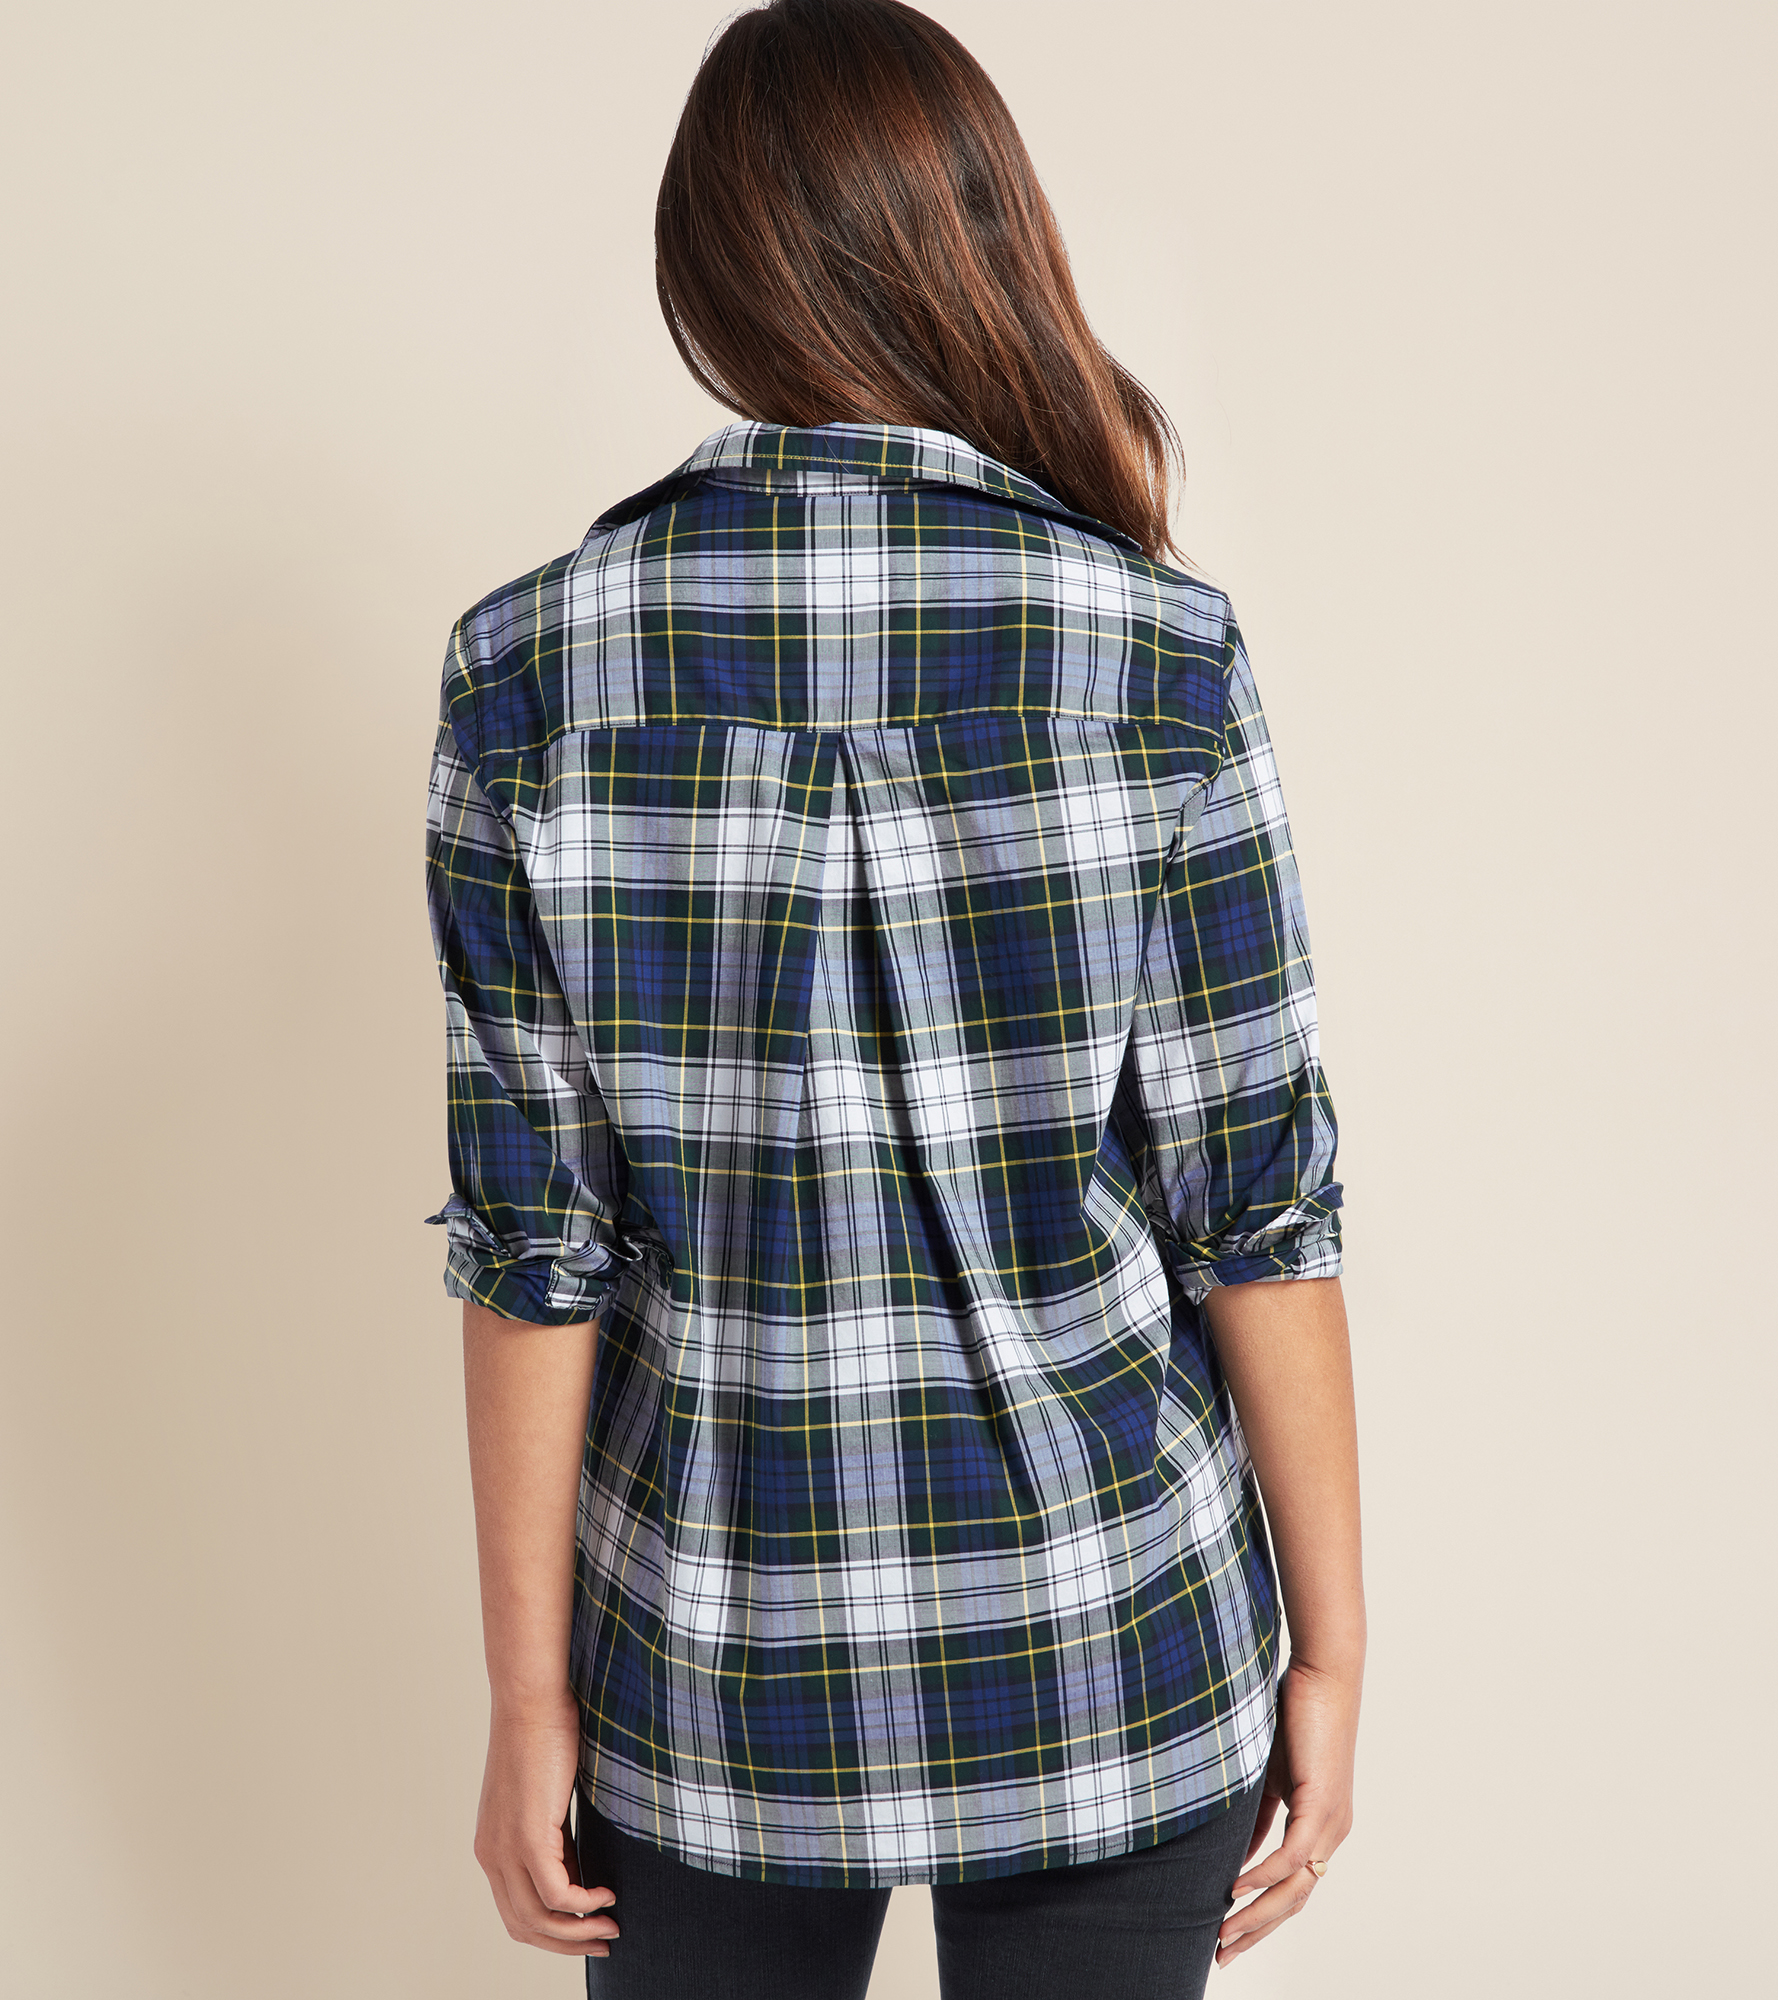 Image of The Hero Navy, White and Yellow Plaid, Cool Cotton Sale